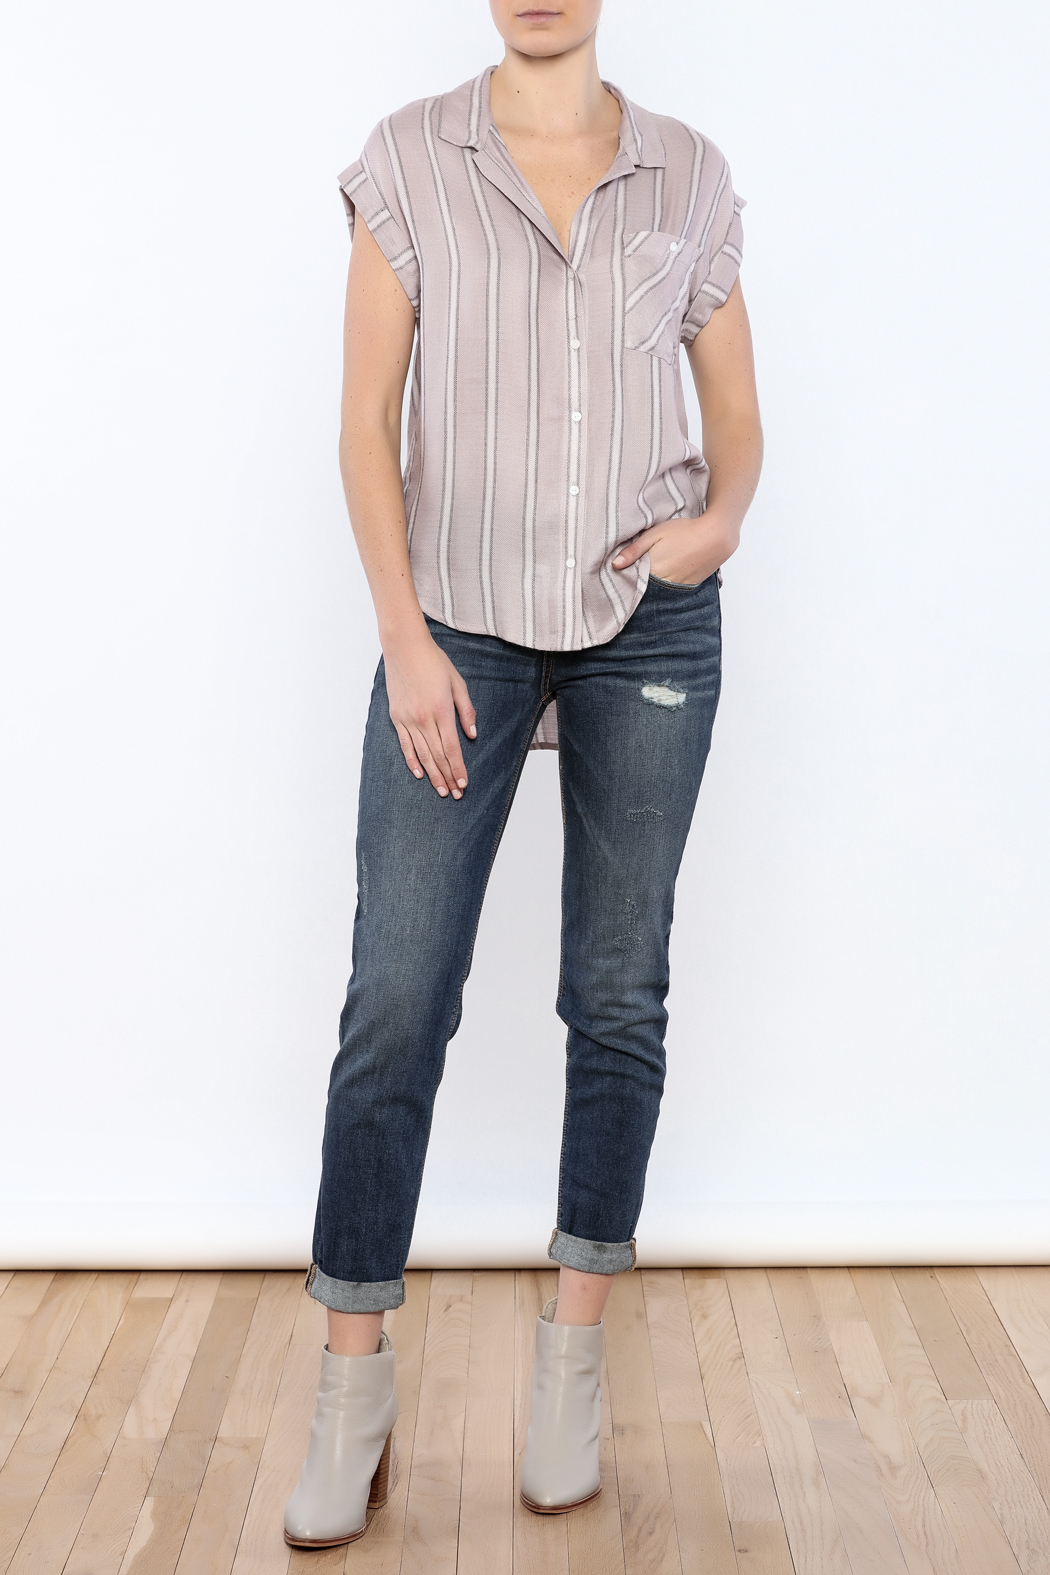 Sneak Peek Striped Button Down Hi-Lo Top - Front Full Image